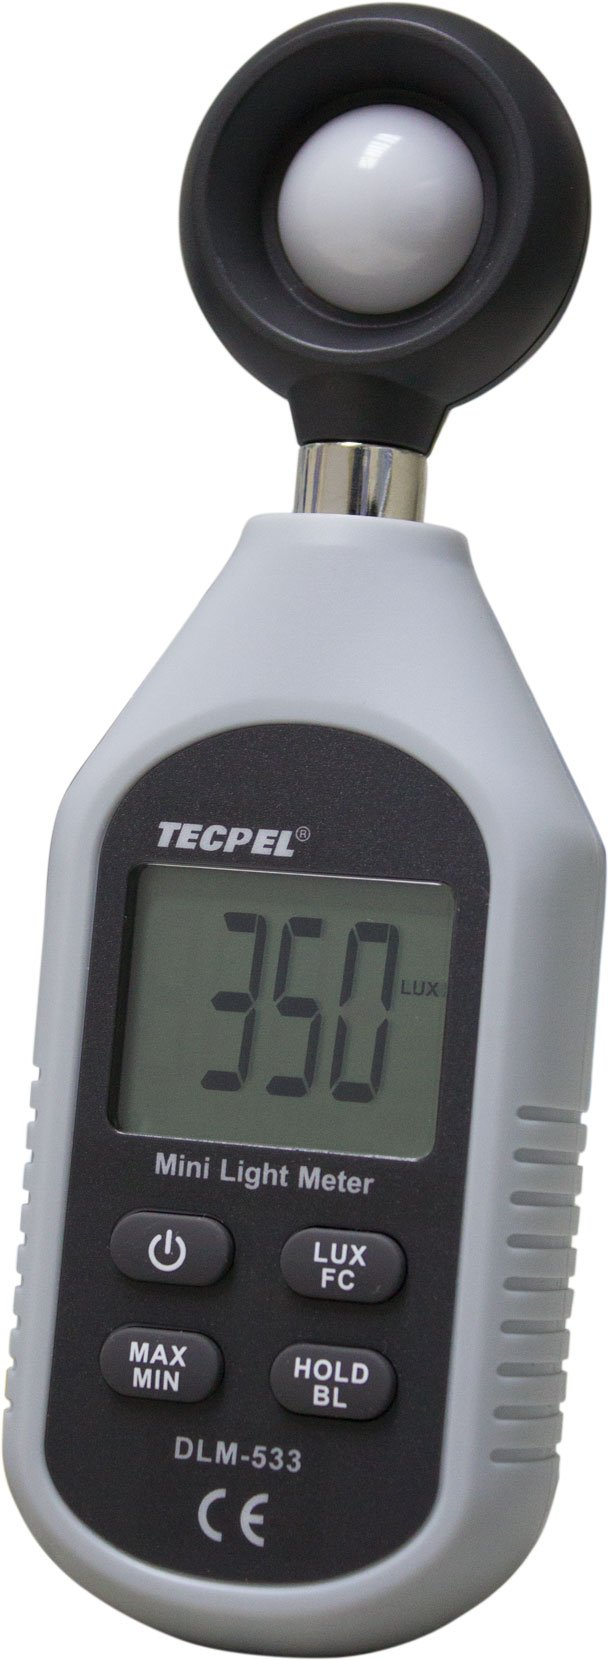 Tecpel pocket Light Meter DLM-533